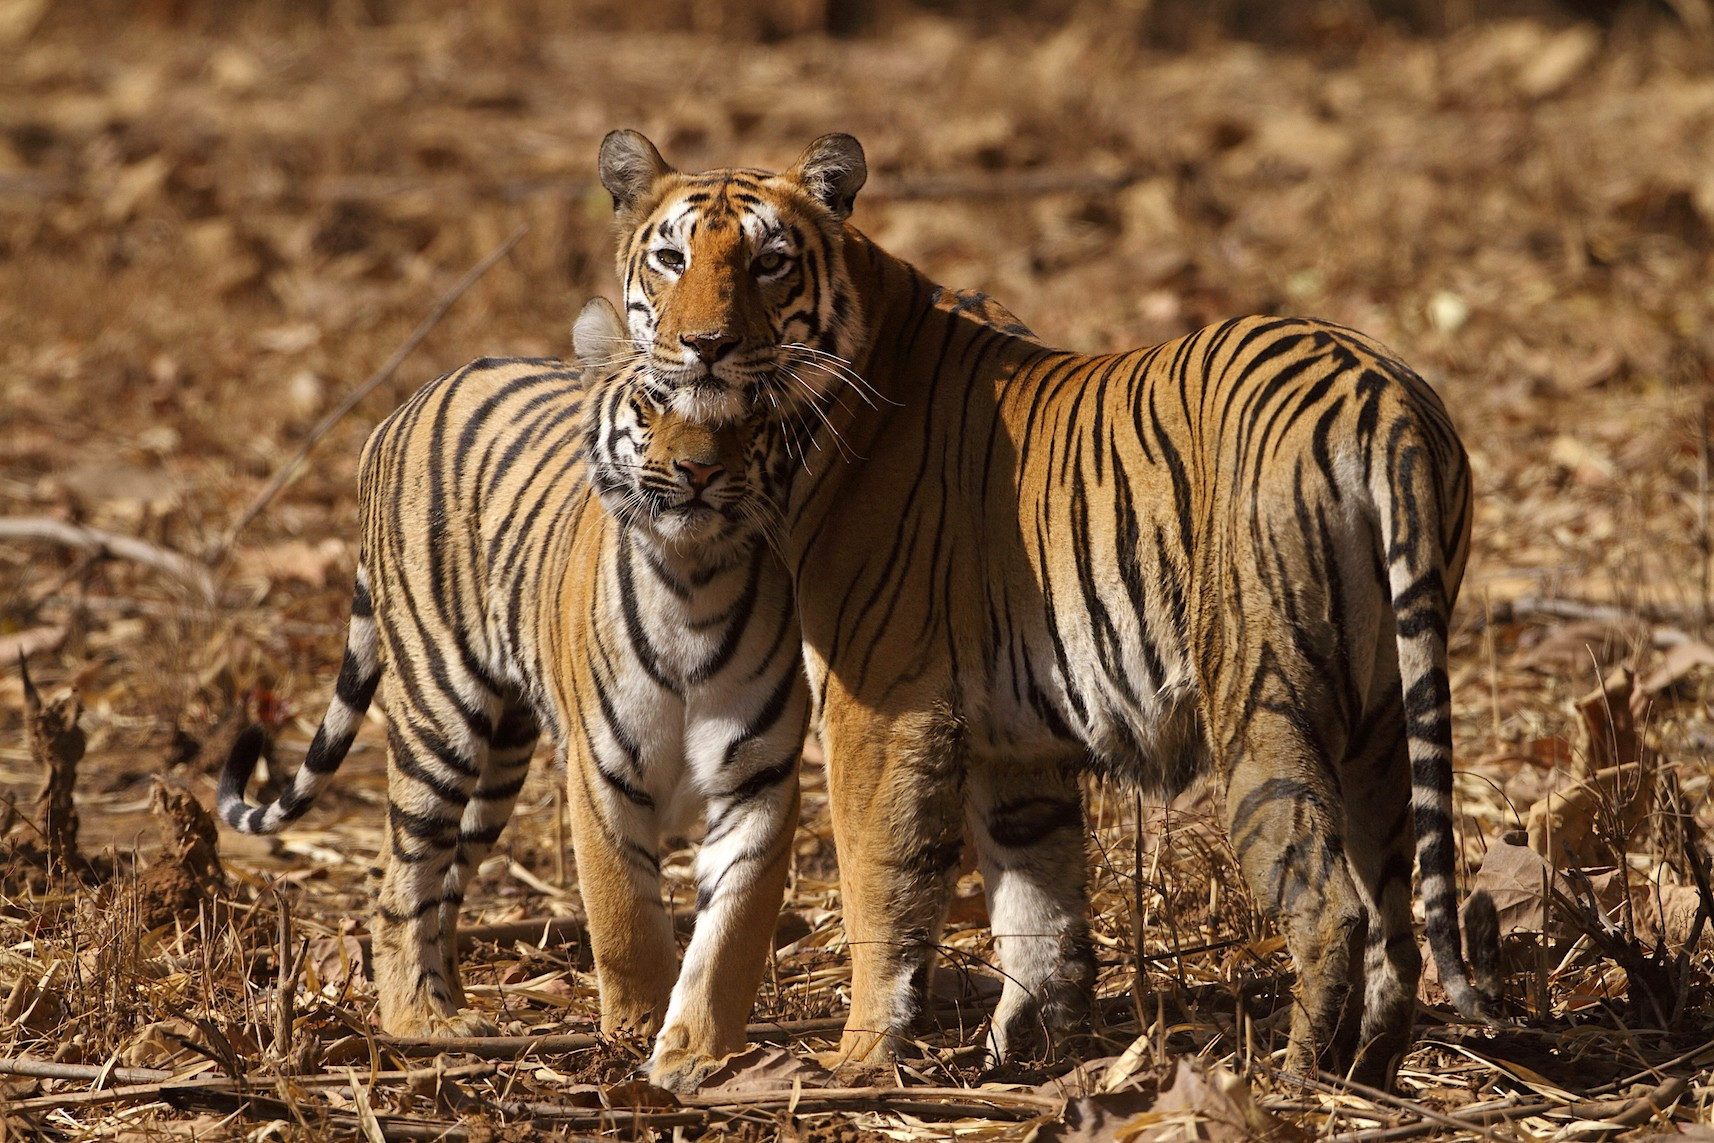 Mother tigers, like this one photographed in Tadoba, forestall male violence against their cubs by mating even when they are not in heat. Photo: Shivang Mehta